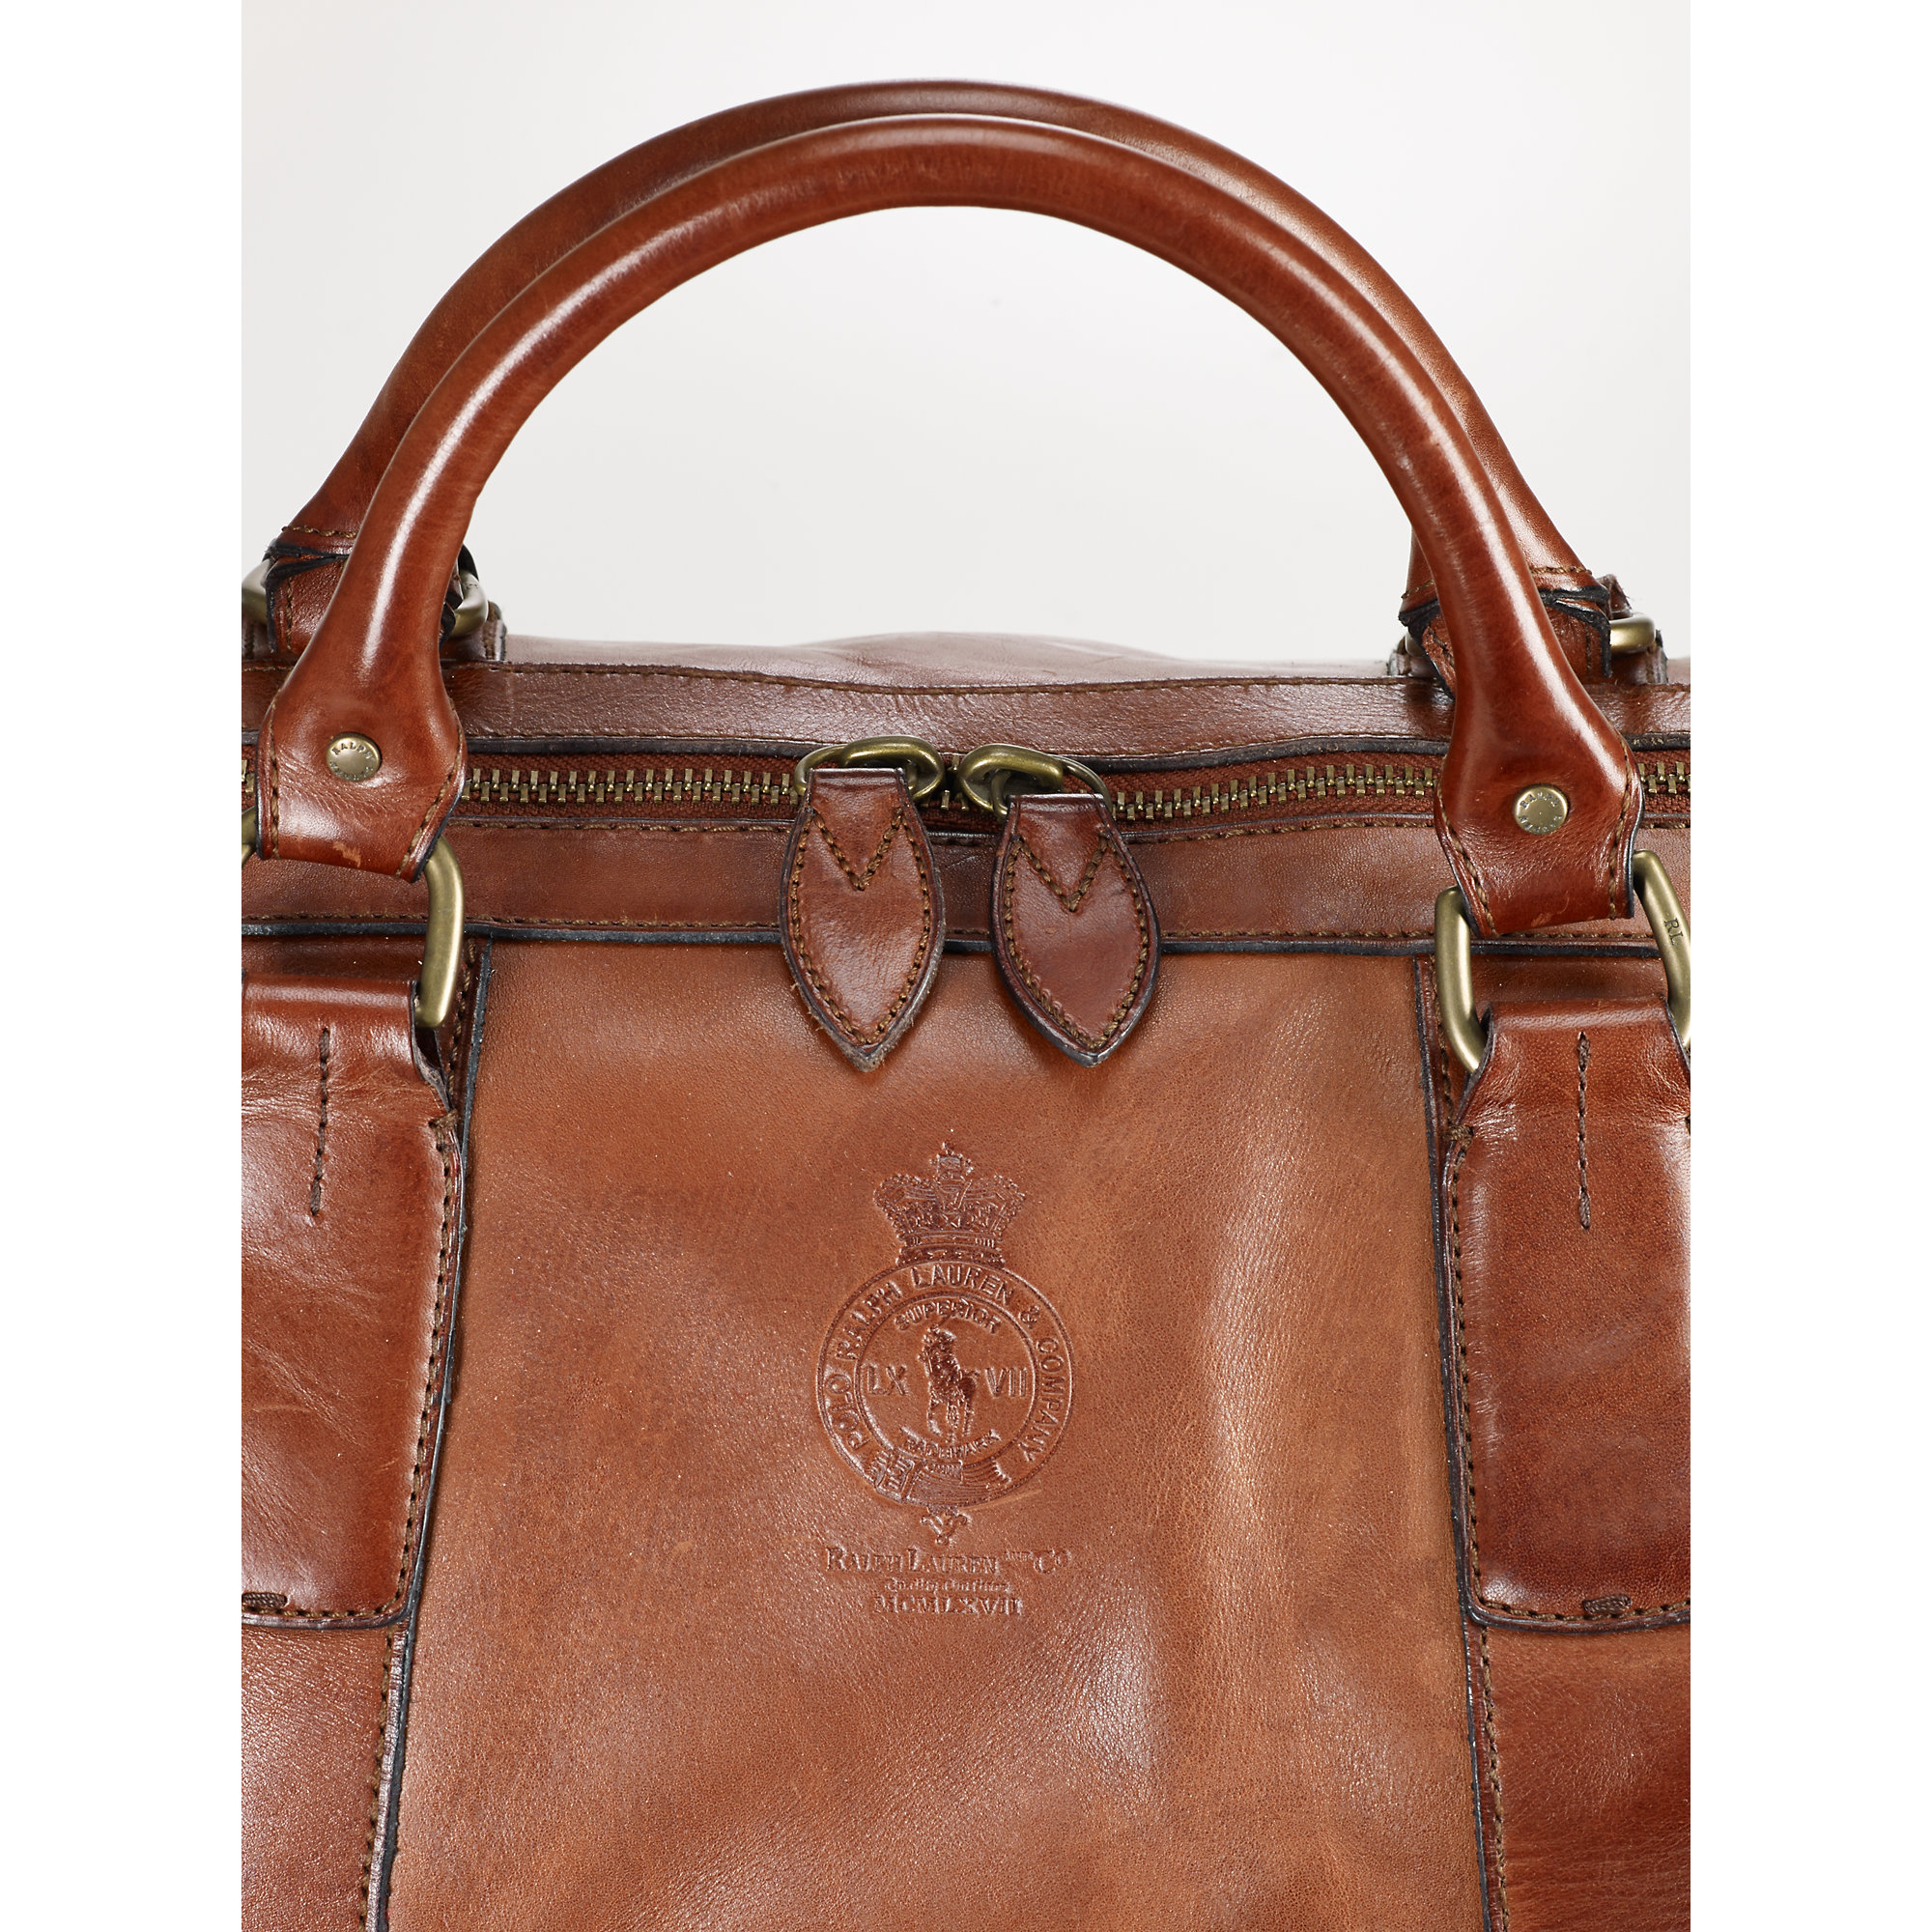 ... usa lyst polo ralph lauren leather duffel bag in brown for men 89d2c  fb7c0 4a597fbbfe2c5